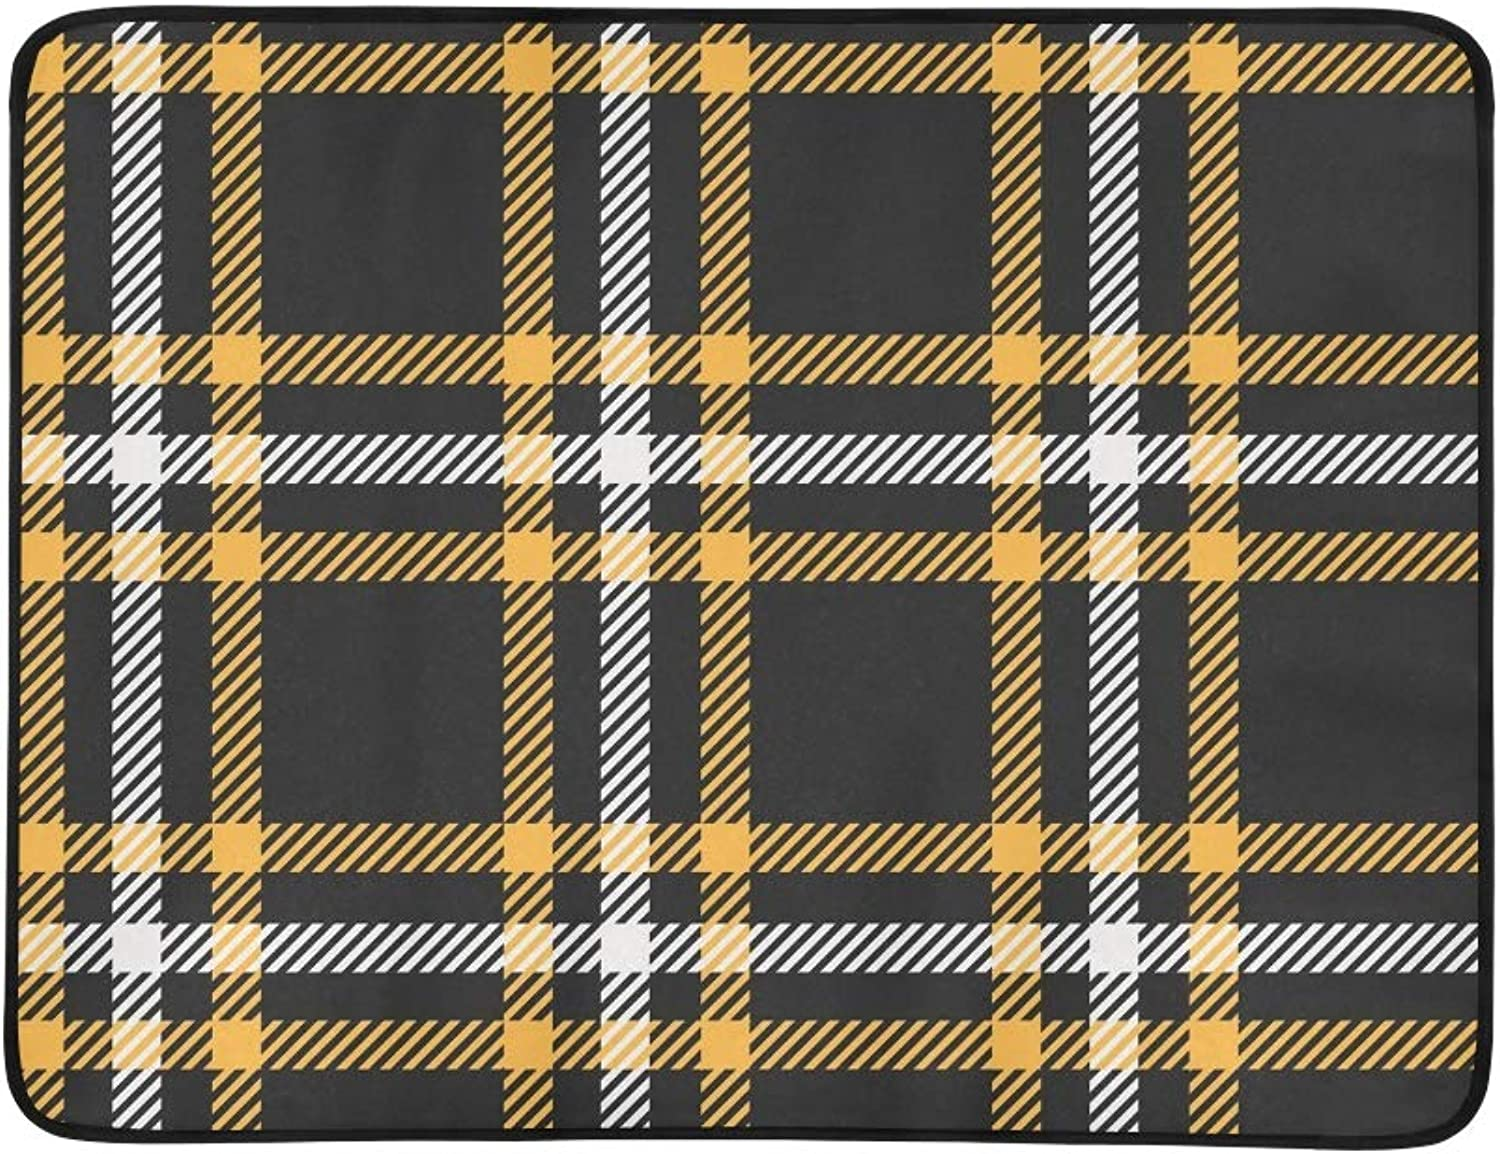 Plaid Tartan Black Yellow Portable and Foldable Blanket Mat 60x78 Inch Handy Mat for Camping Picnic Beach Indoor Outdoor Travel